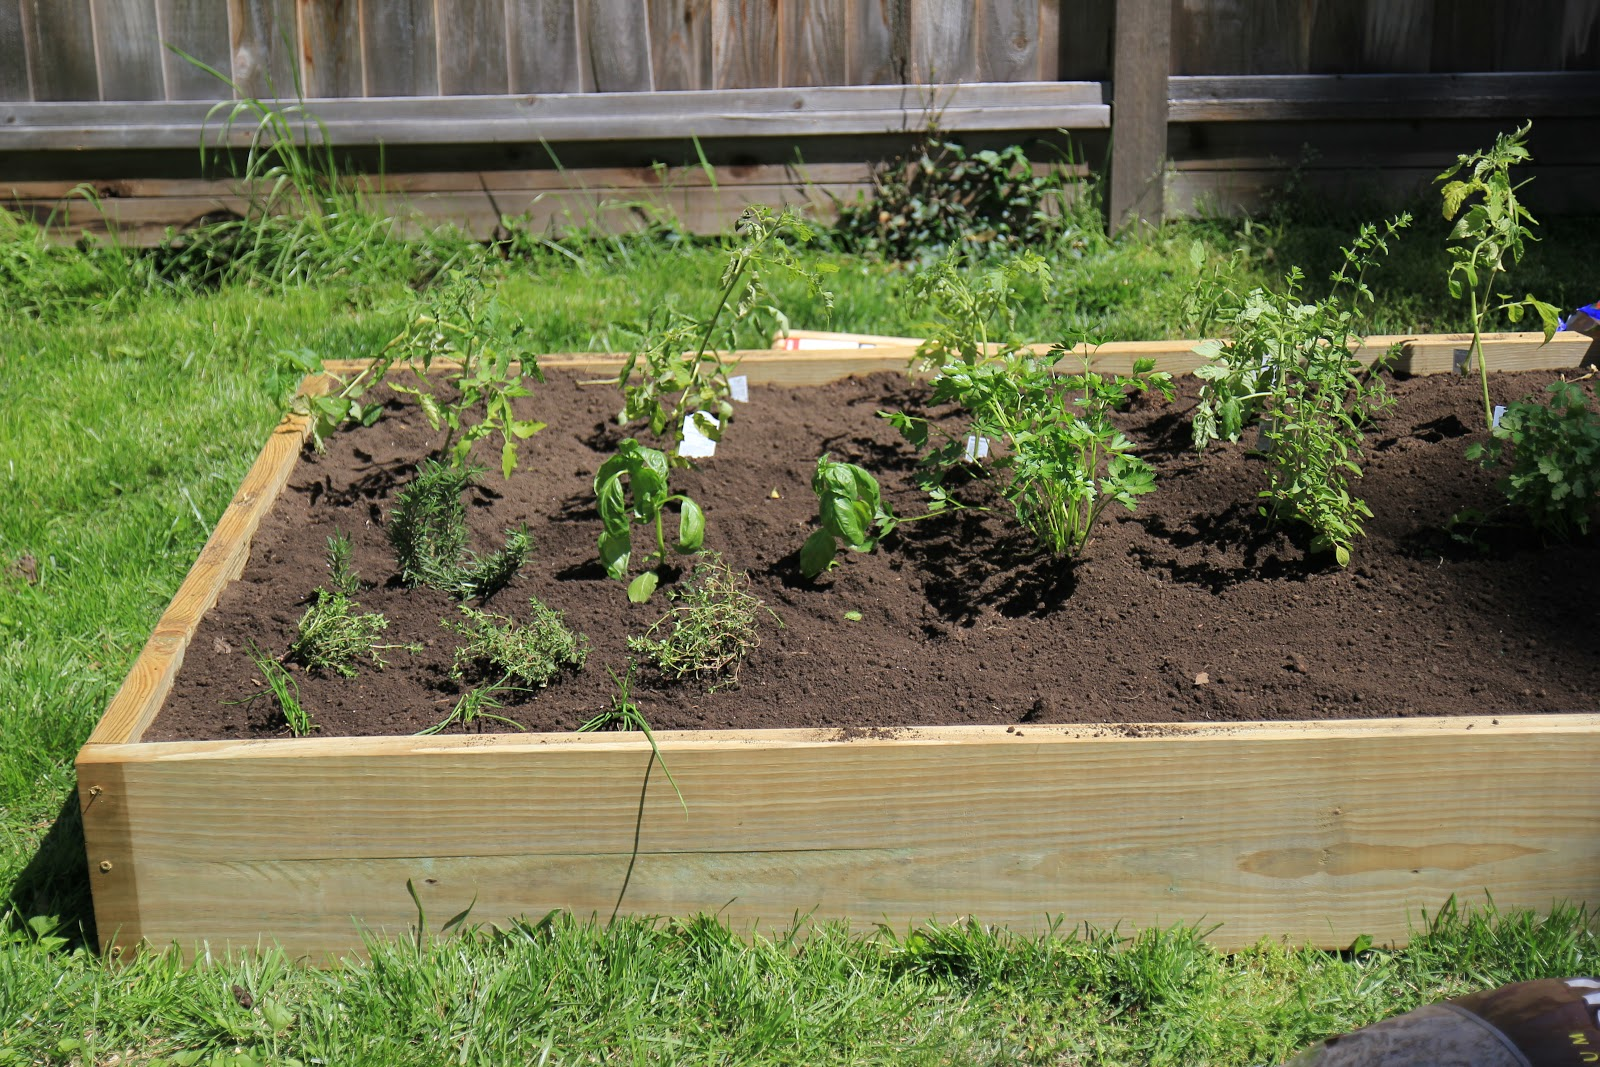 Jenny Steffens Hobick: My $75 Backyard Garden | DIY Raised Bed Garden Box